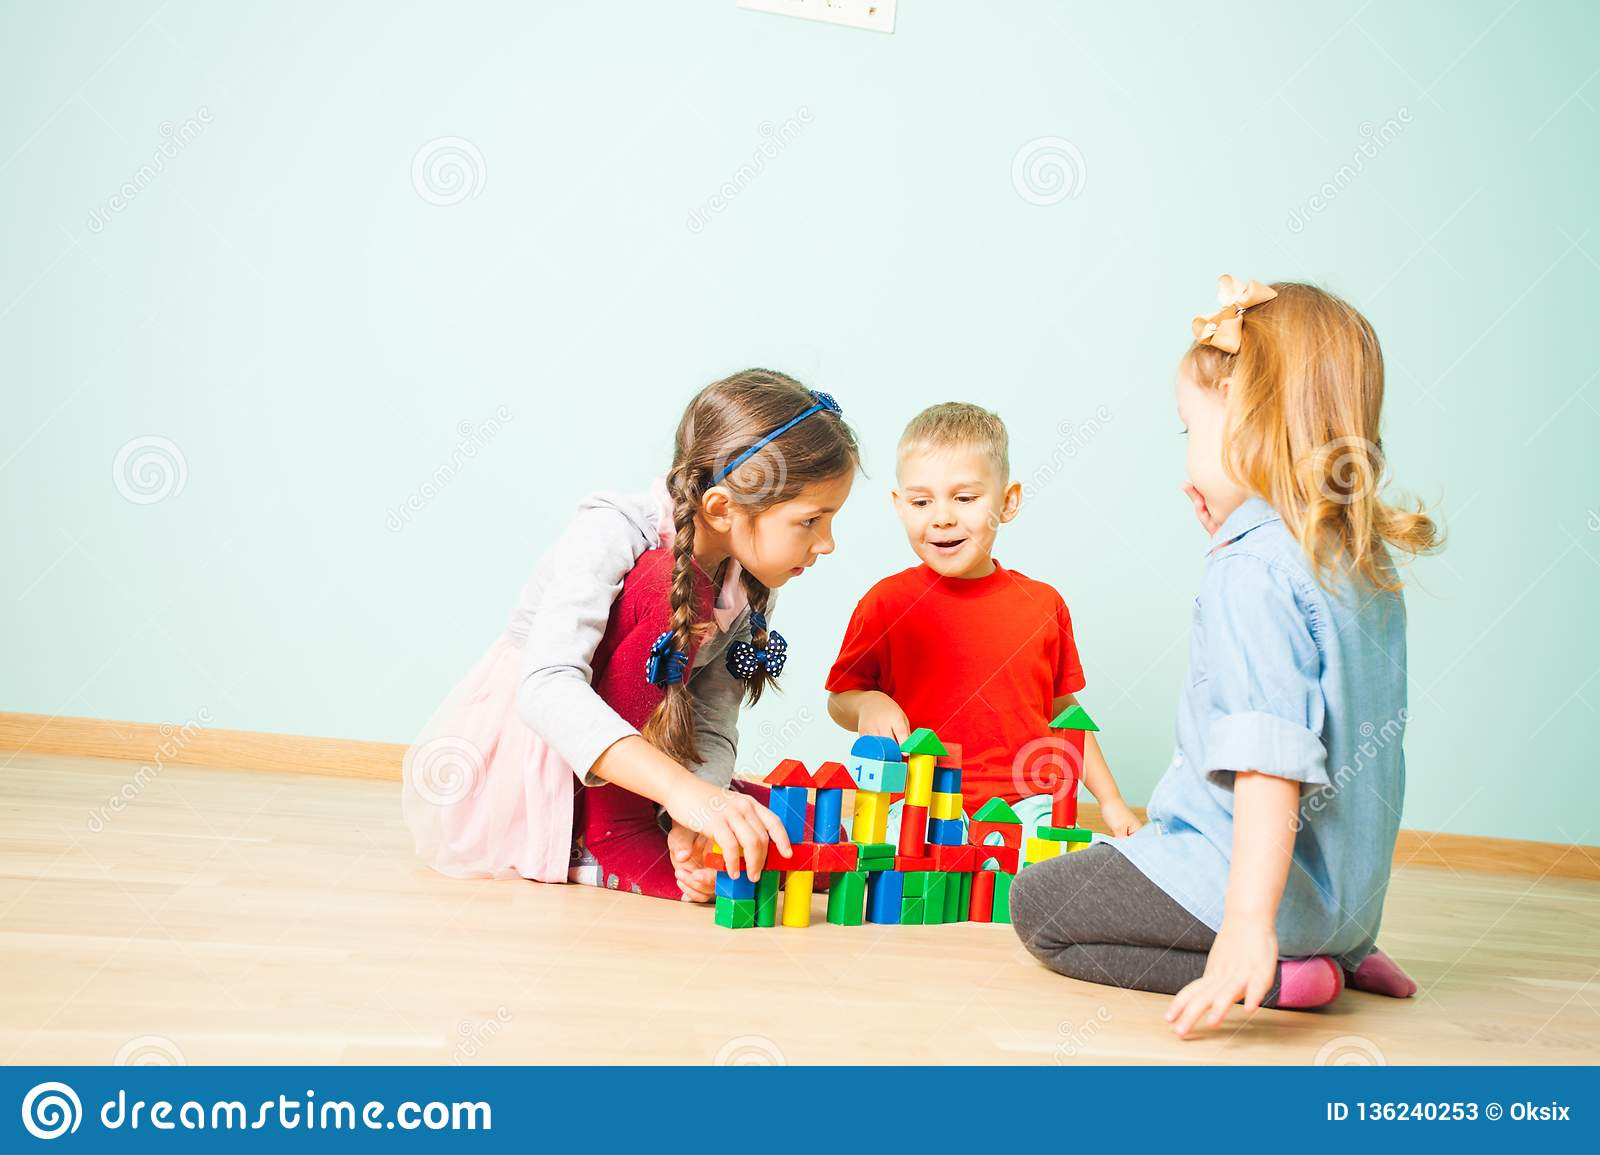 Kids play at day care. Three preschoolers building tower from wooden cubes